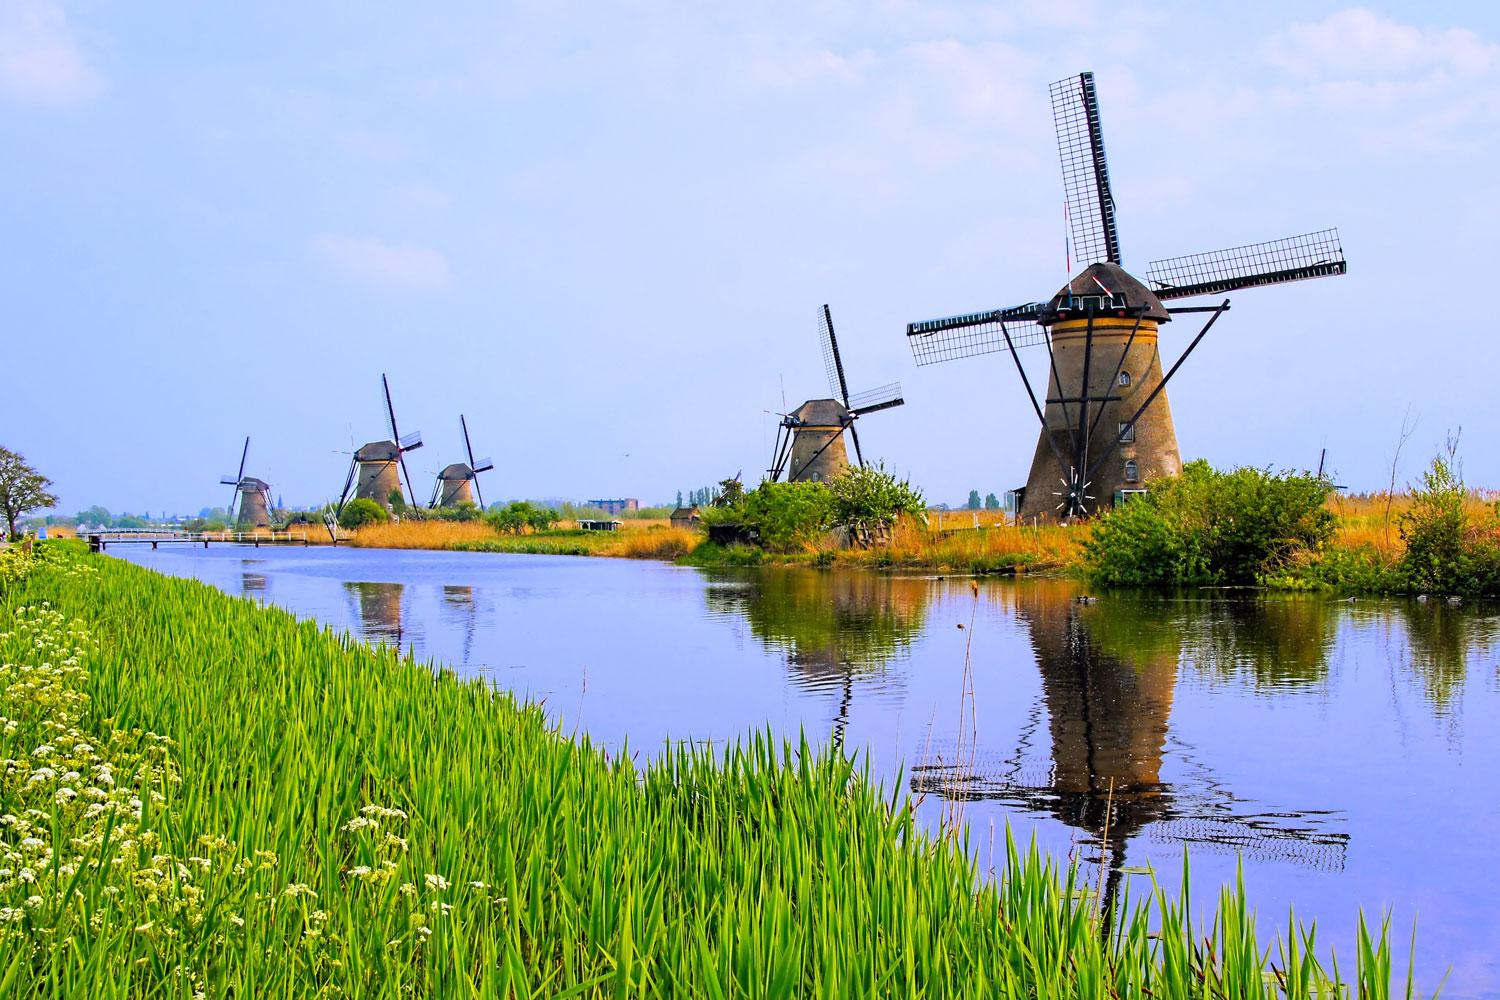 Kinderdijk Windmills, a UNESCO World Heritage Site